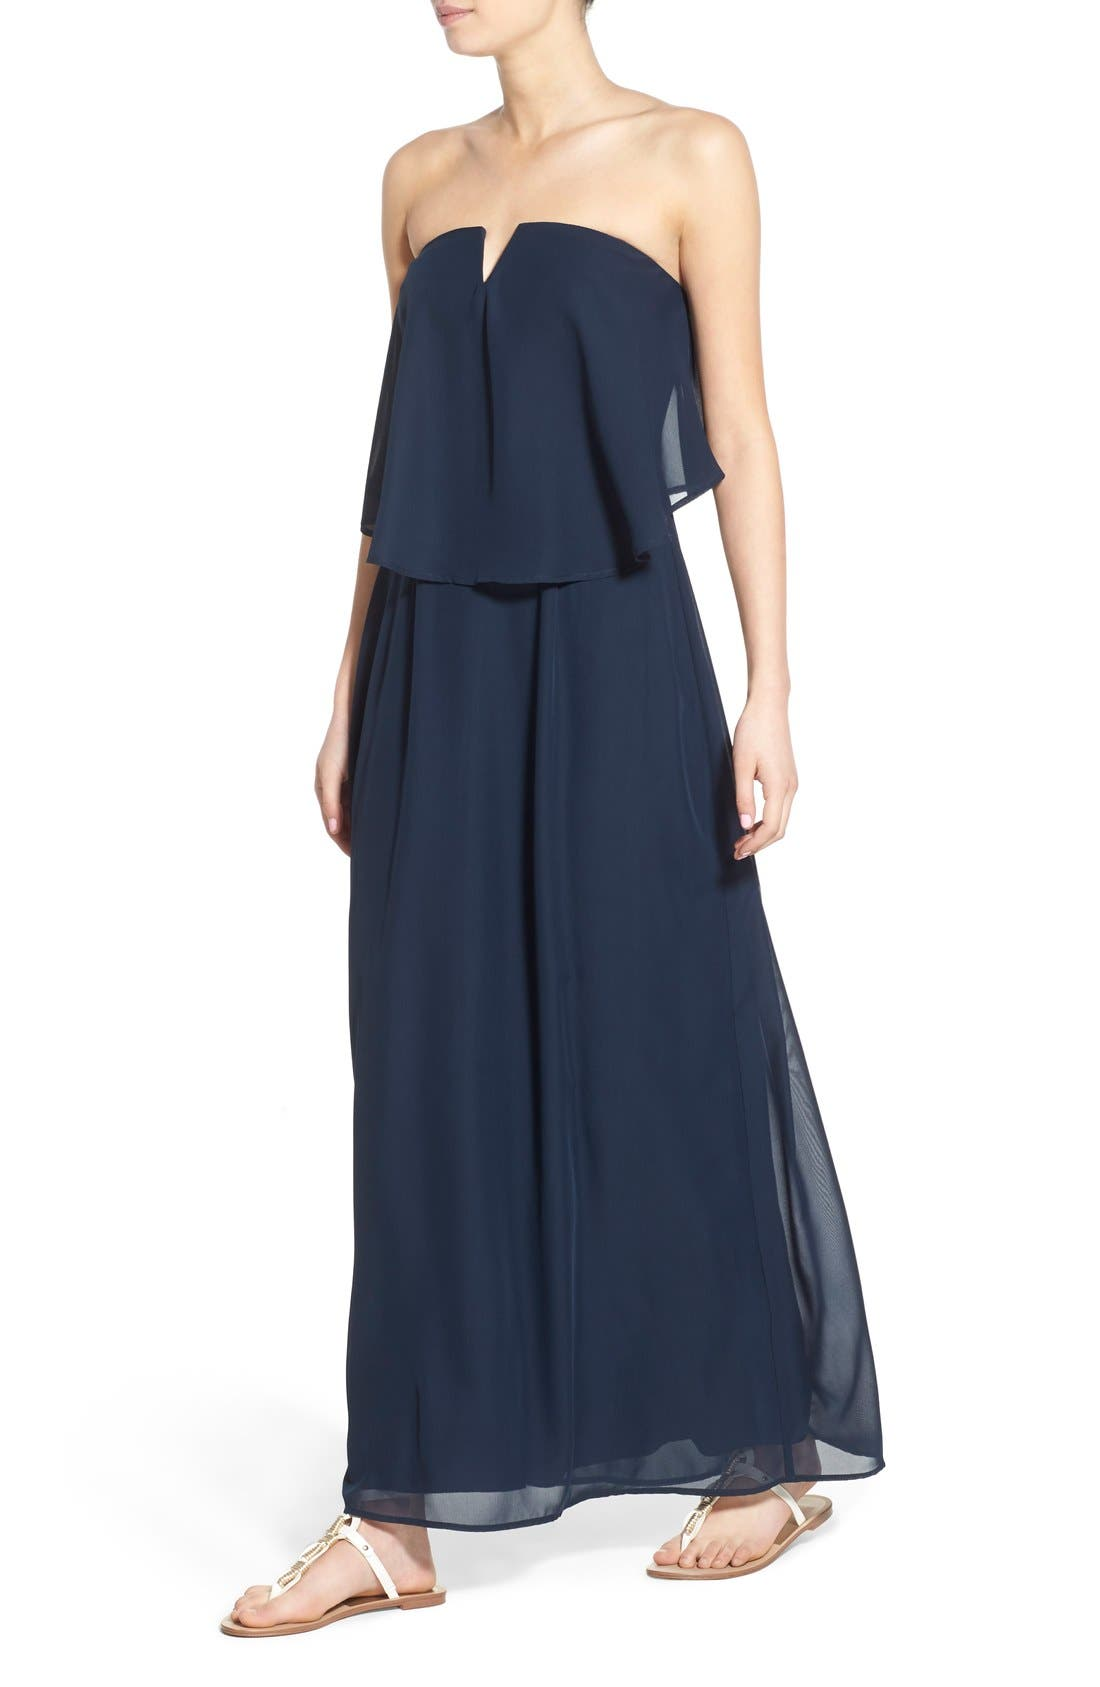 WAY-IN, Strapless Popover Maxi Dress, Alternate thumbnail 4, color, 411